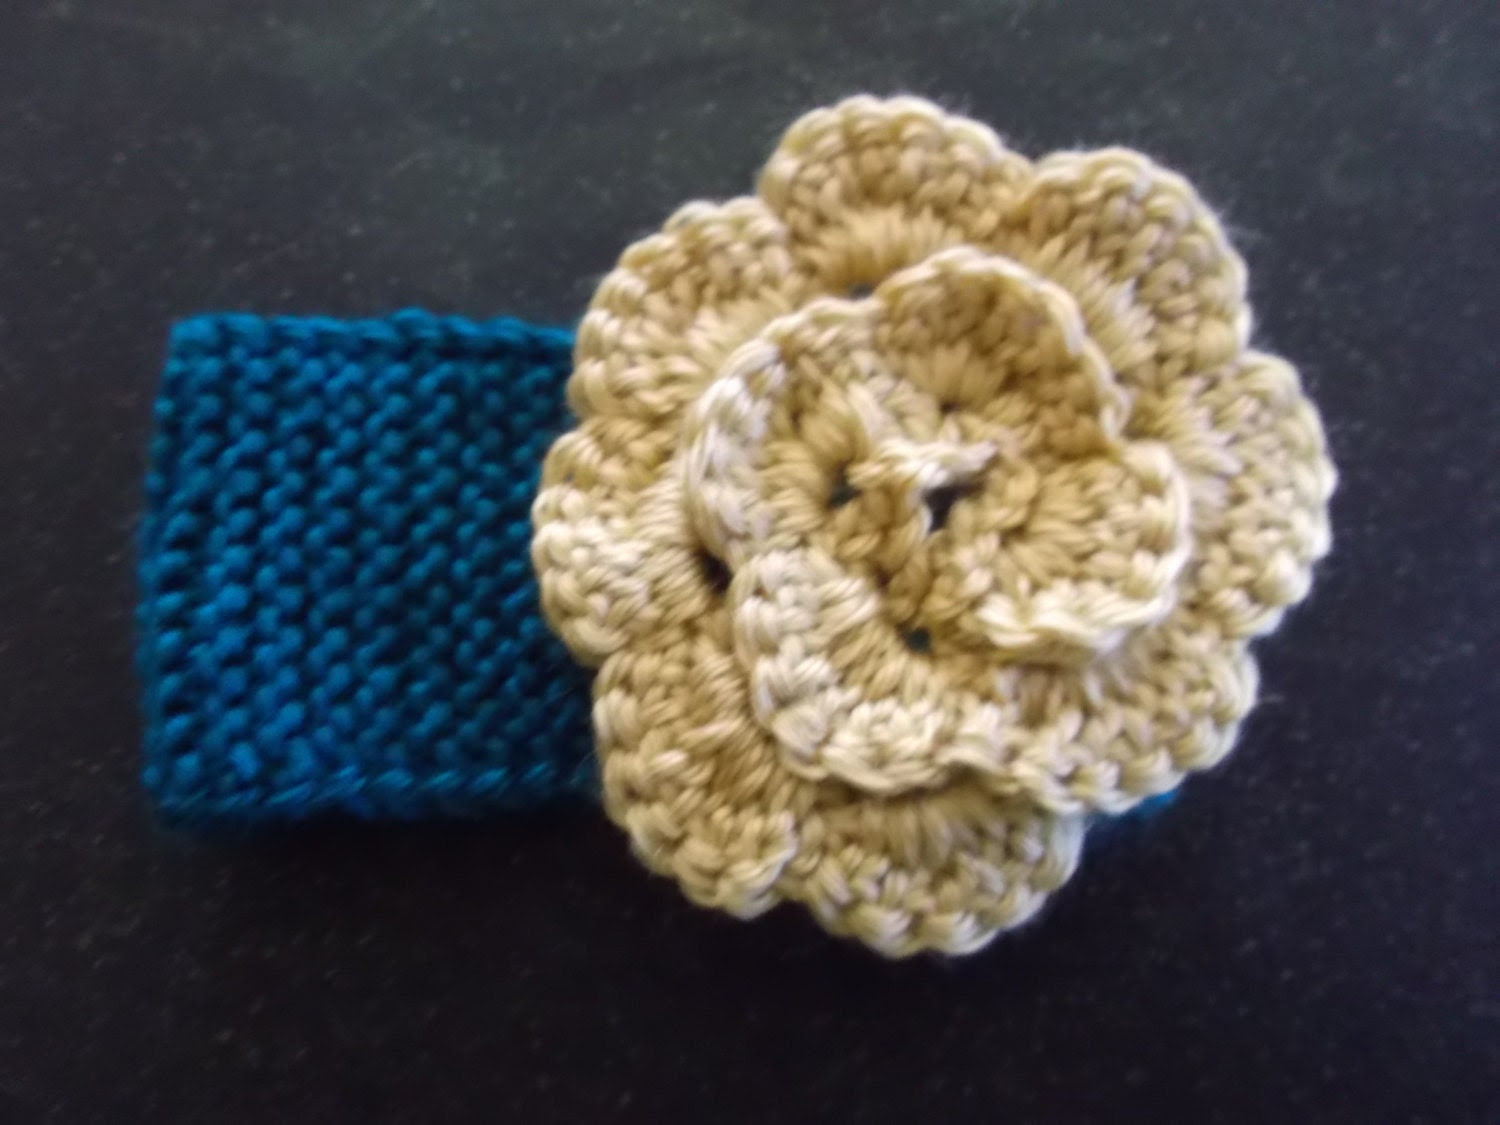 Knit Teal Baby Headband, Earwarmer With Crocheted Gold Rosette Accessory Size 0-3 Months: Easter/Spring